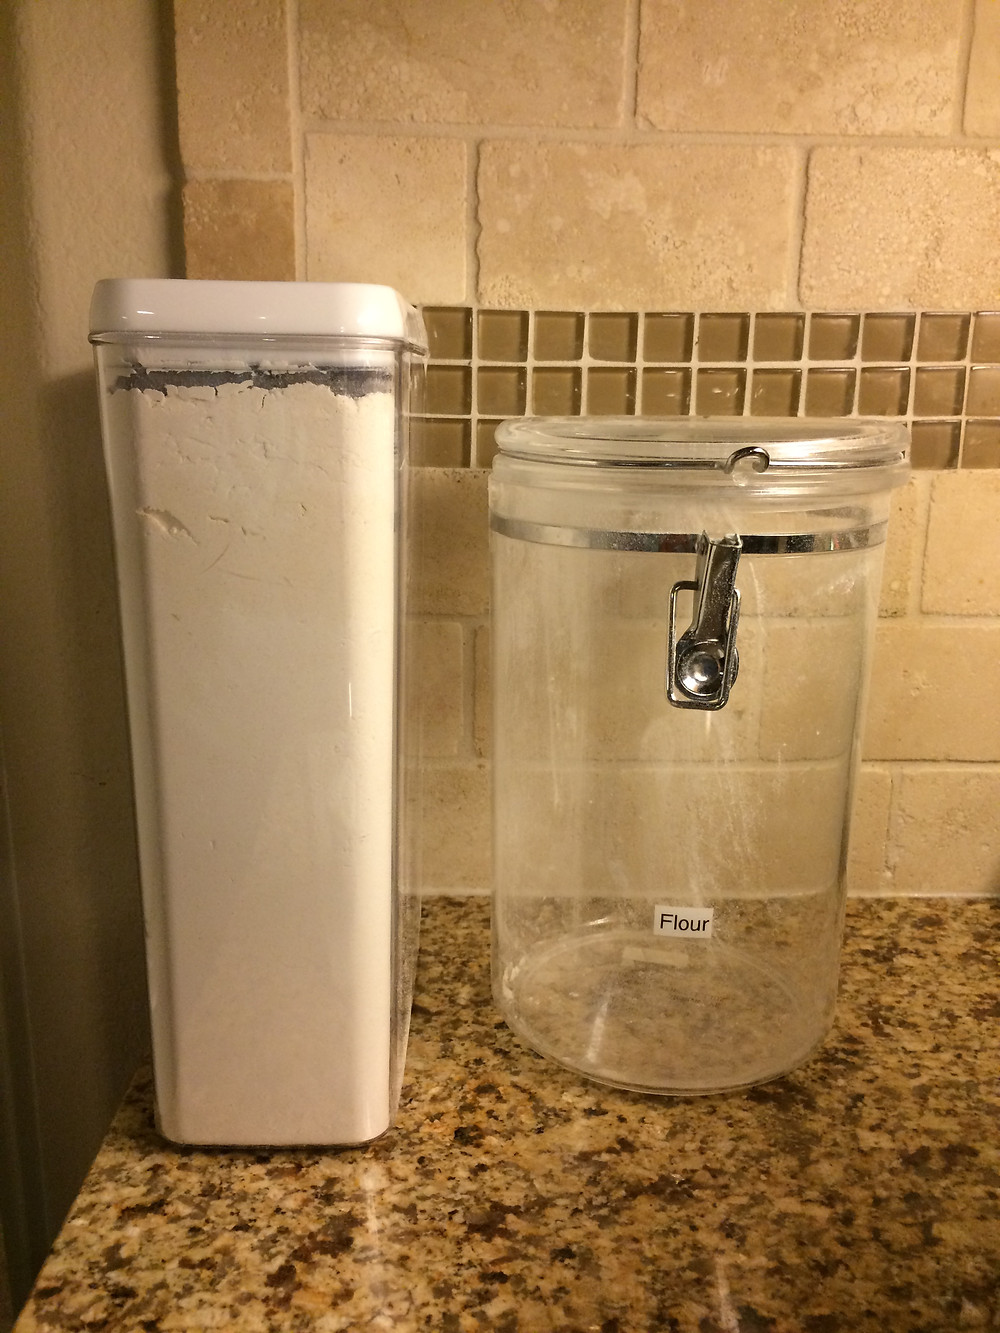 Flour containers